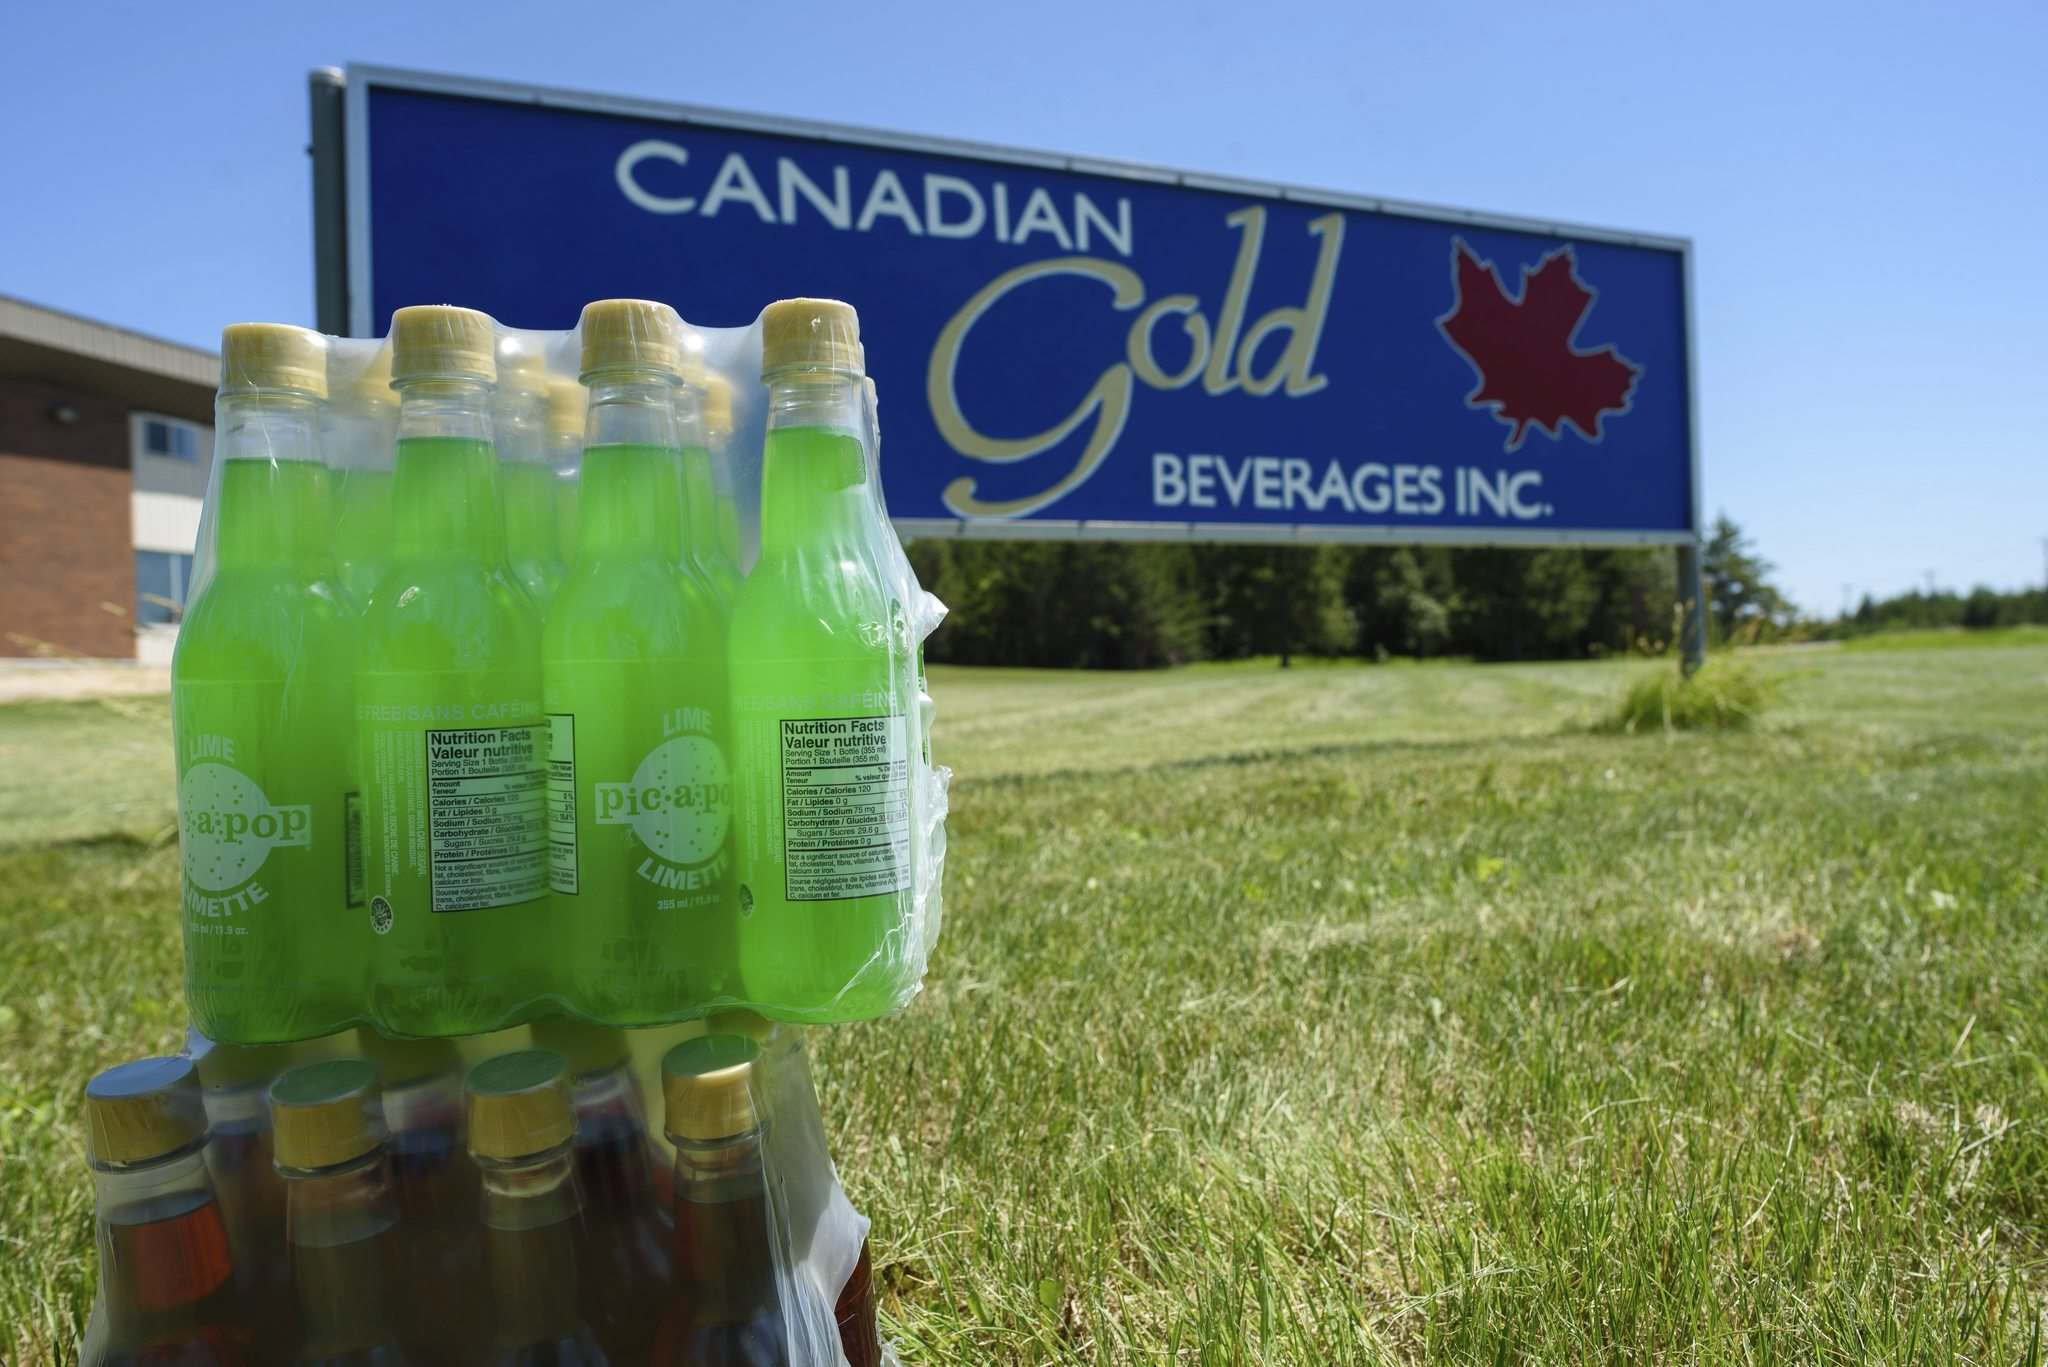 Canadian Gold Beverages in Marchand has been producing Pic-a-Pop since 2014. (Jesse Boily / Winnipeg Free Press)</p>